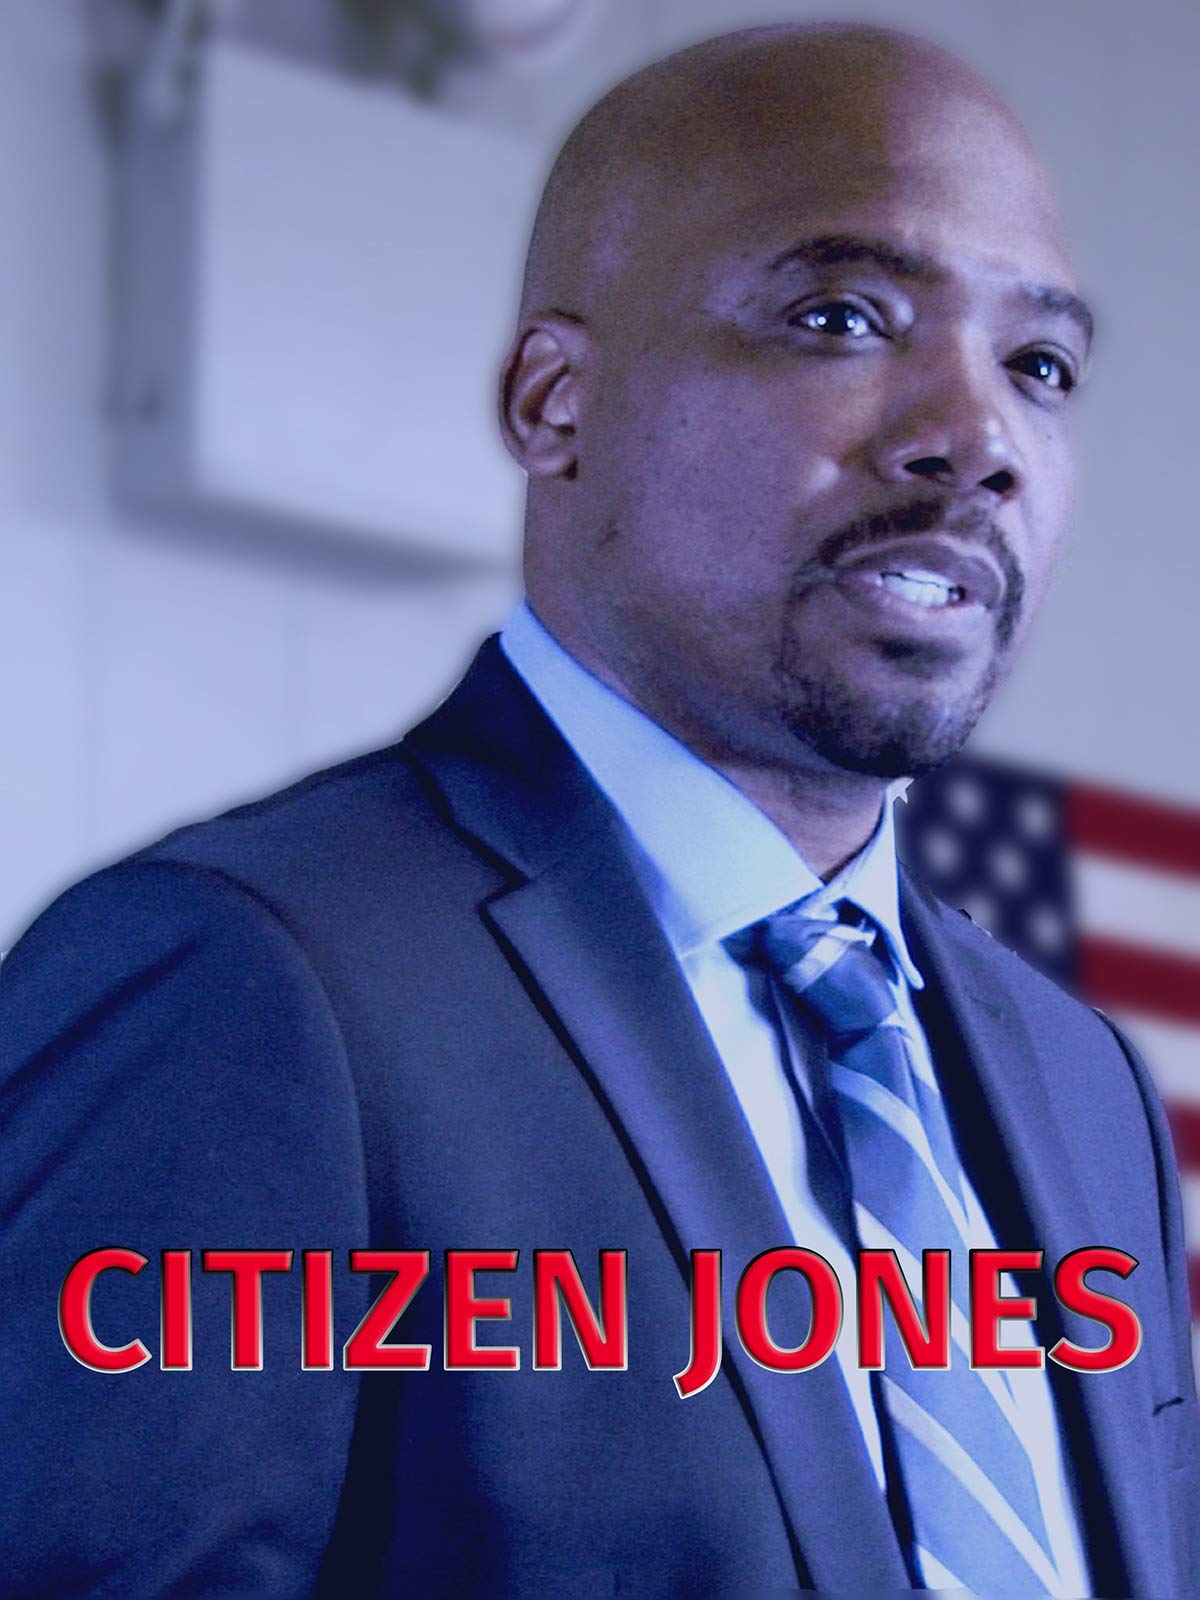 Citizen Jones